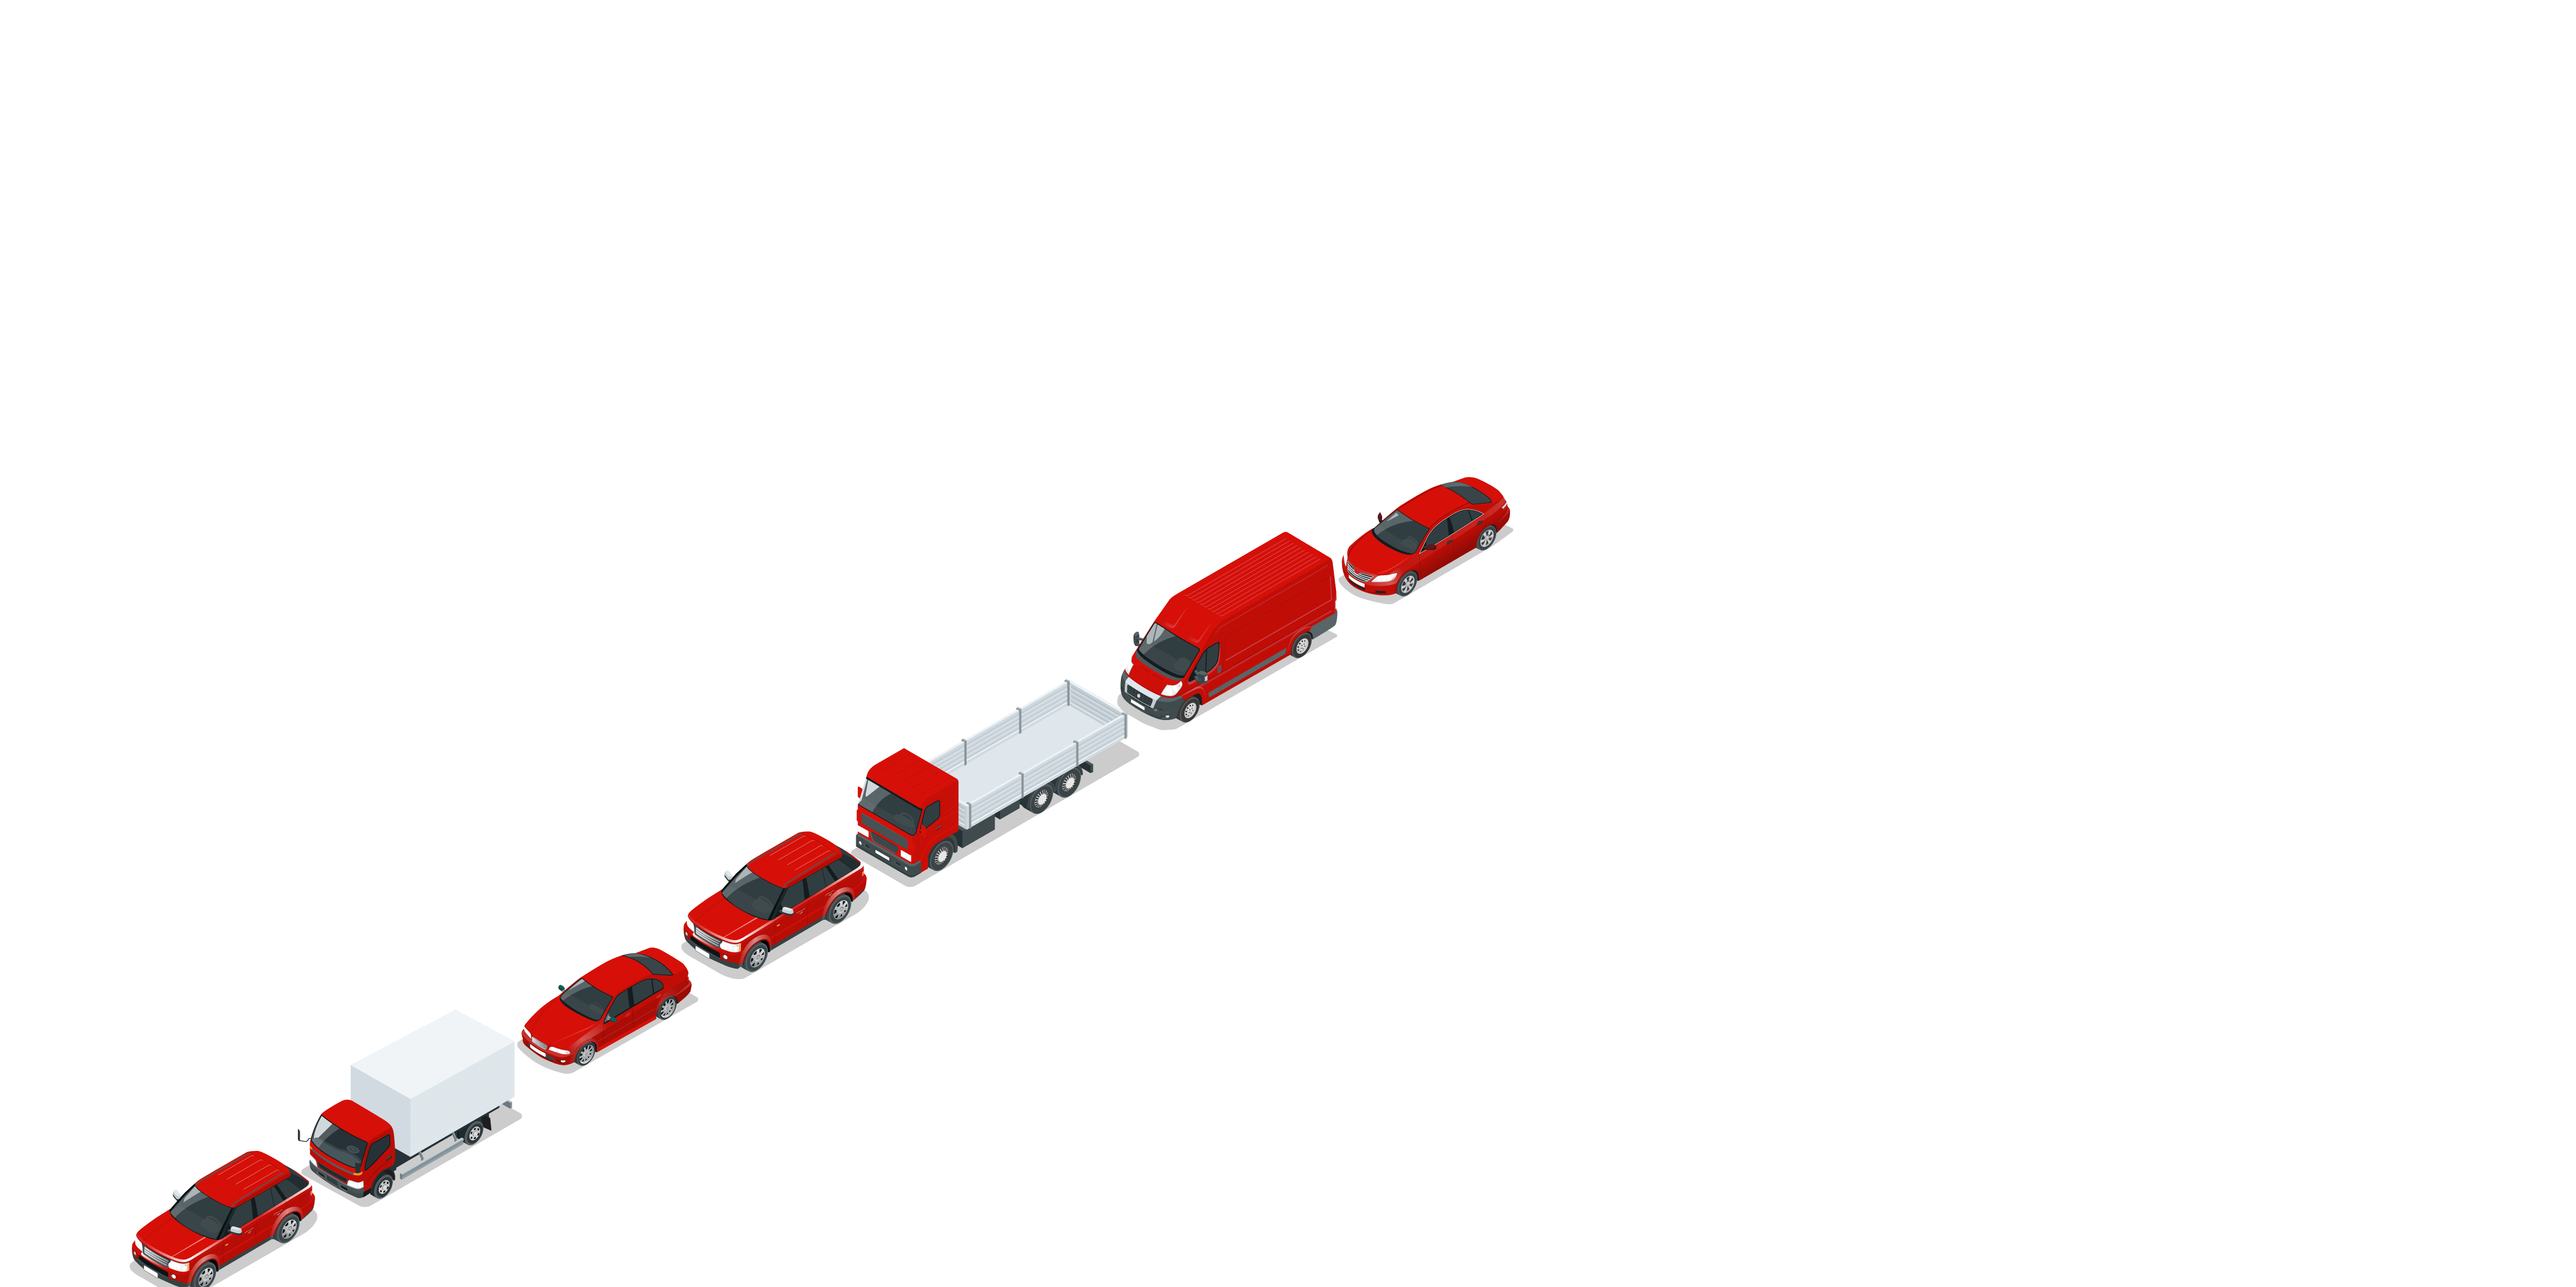 A lane of slow-moving, congested traffic